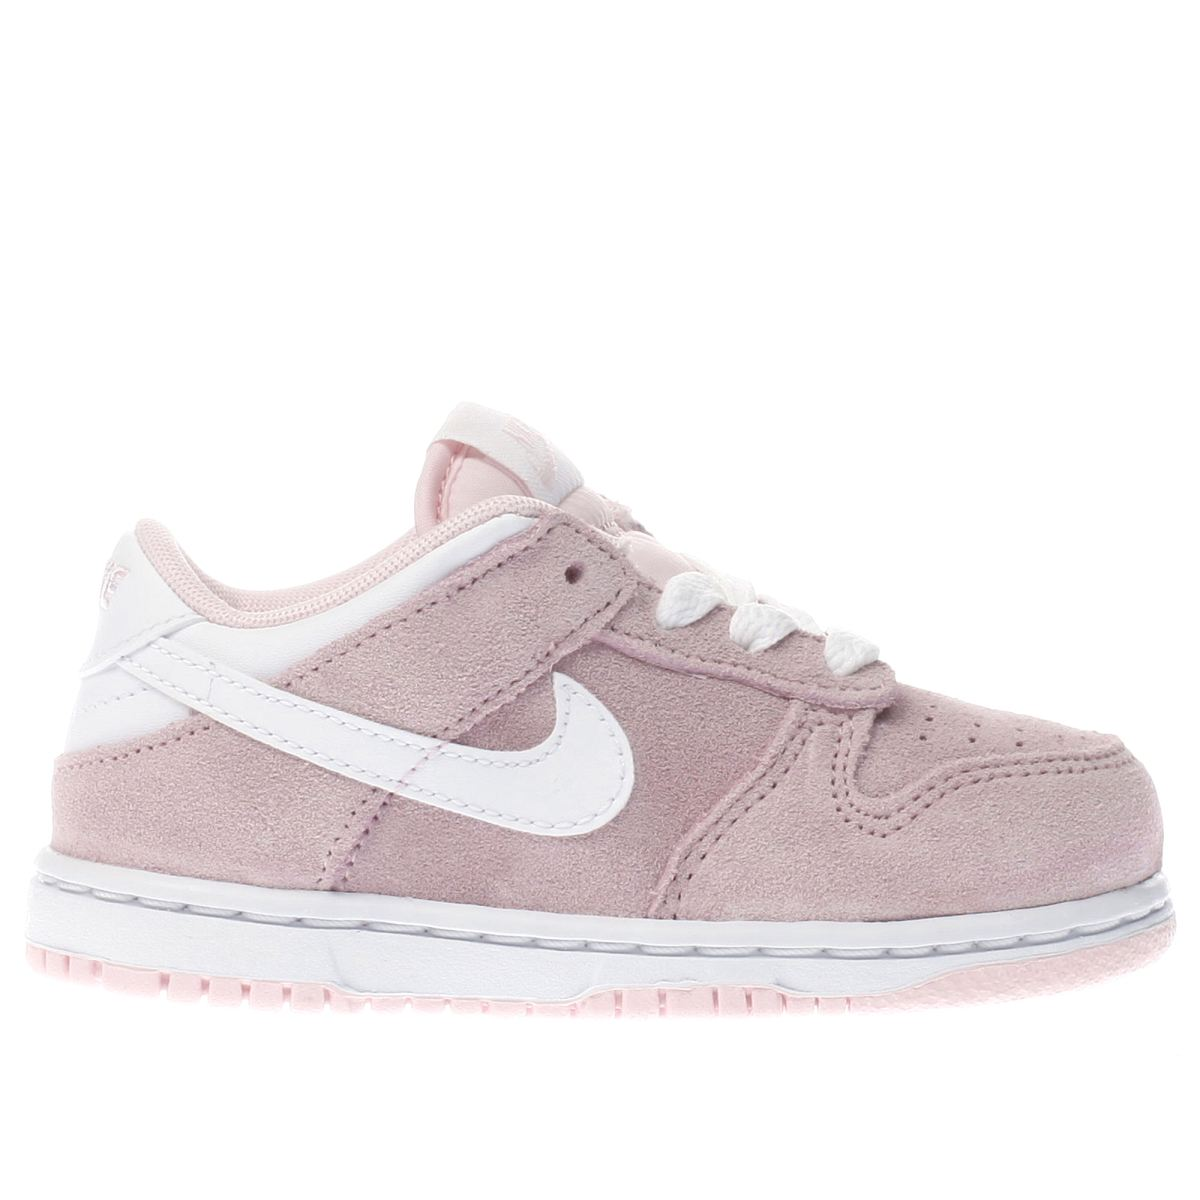 nike pink dunk low Girls Toddler Trainers